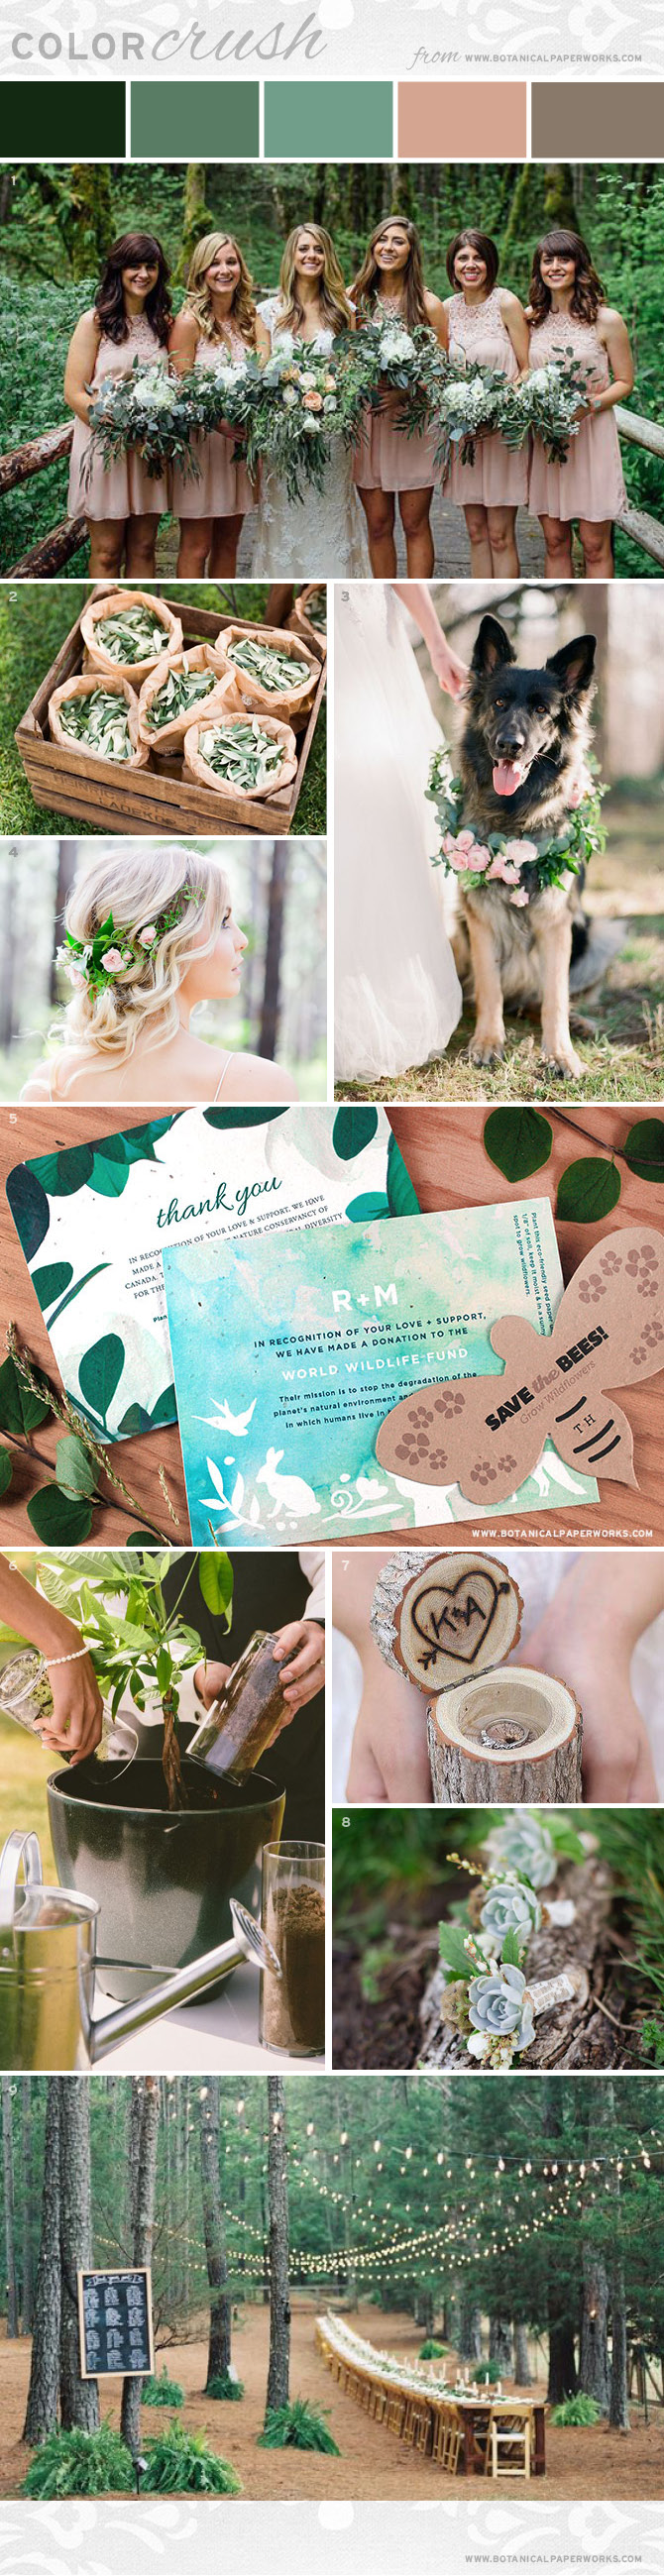 Create natural, beautiful ambiance for an eco-friendly wedding with the earthy elements featured in this dreamy wedding style board.